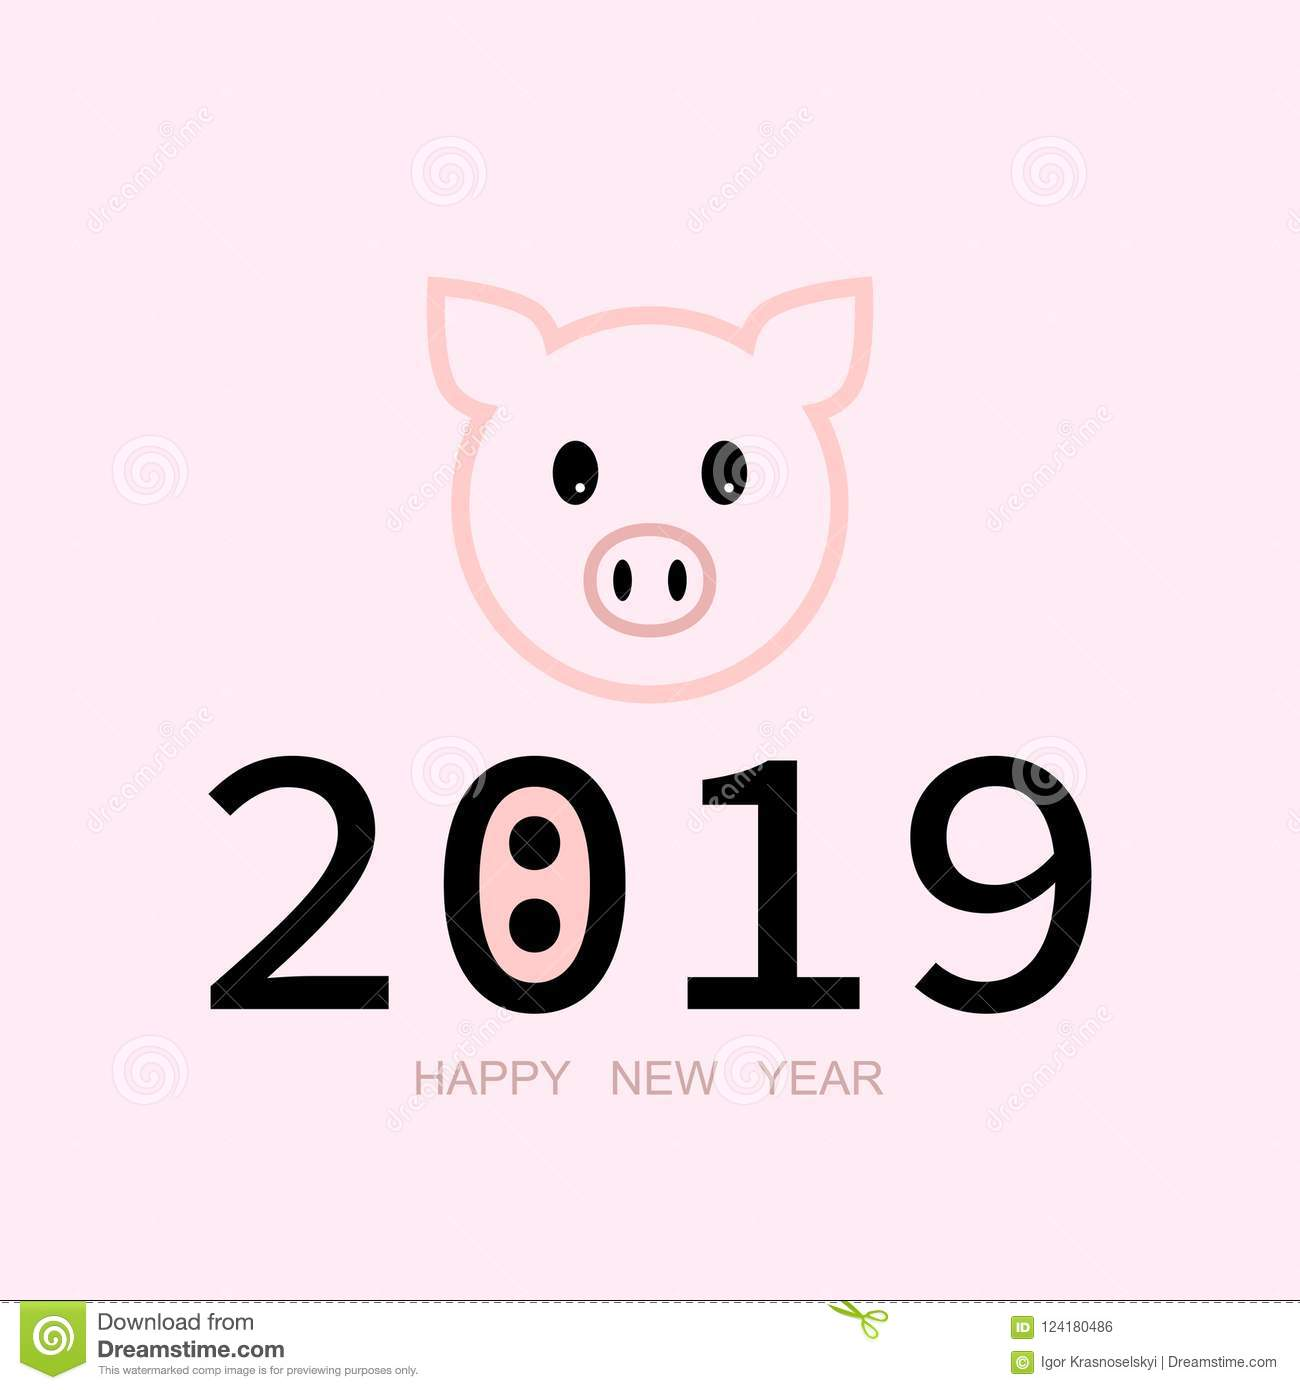 Banner 2019 Happy New Year  Year Pig Stock Vector - Illustration of